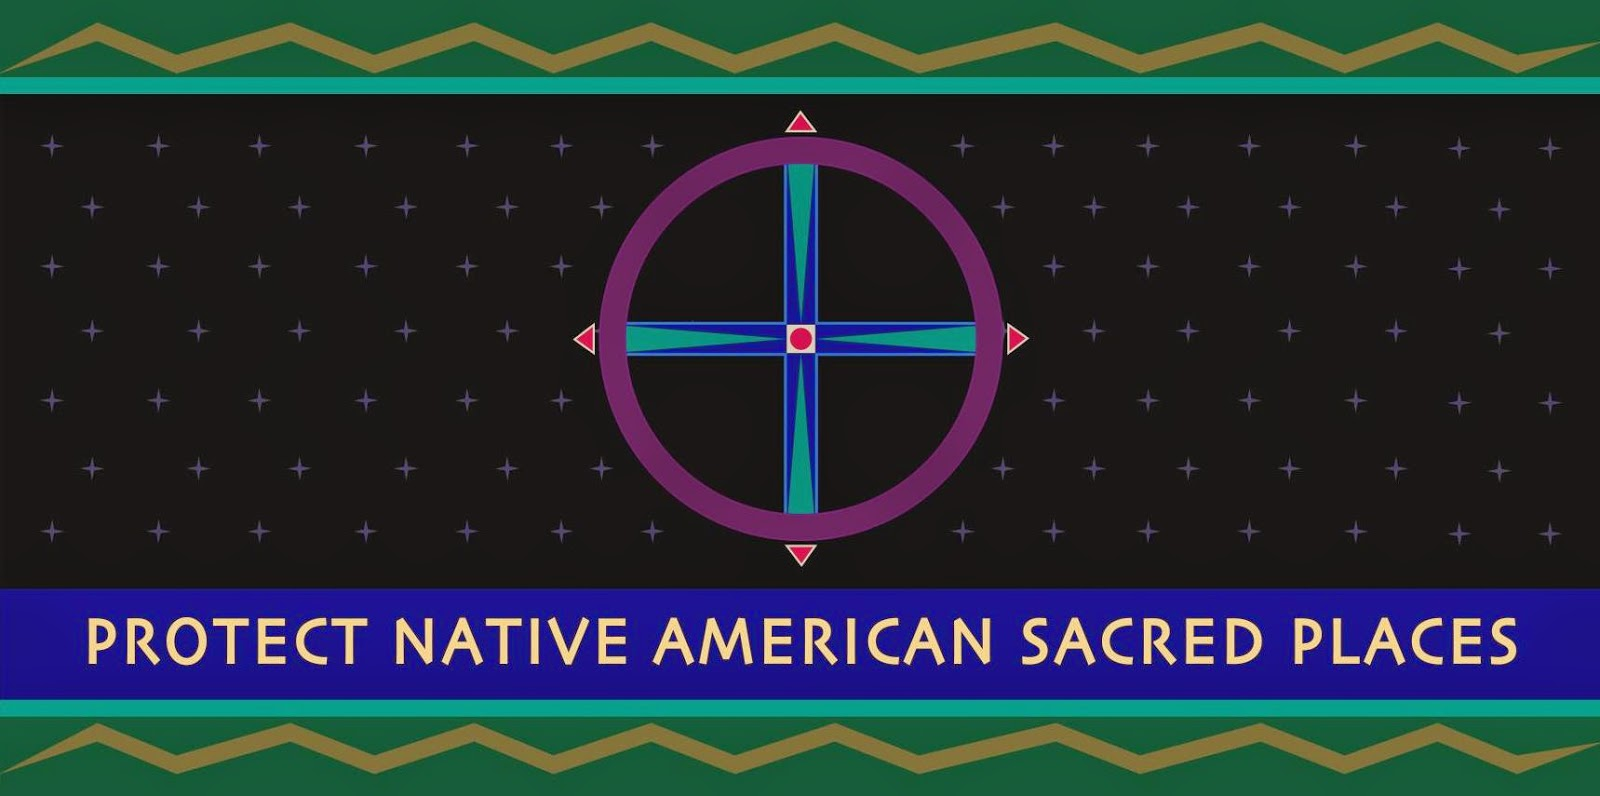 Protect Native American Sacred Spaces